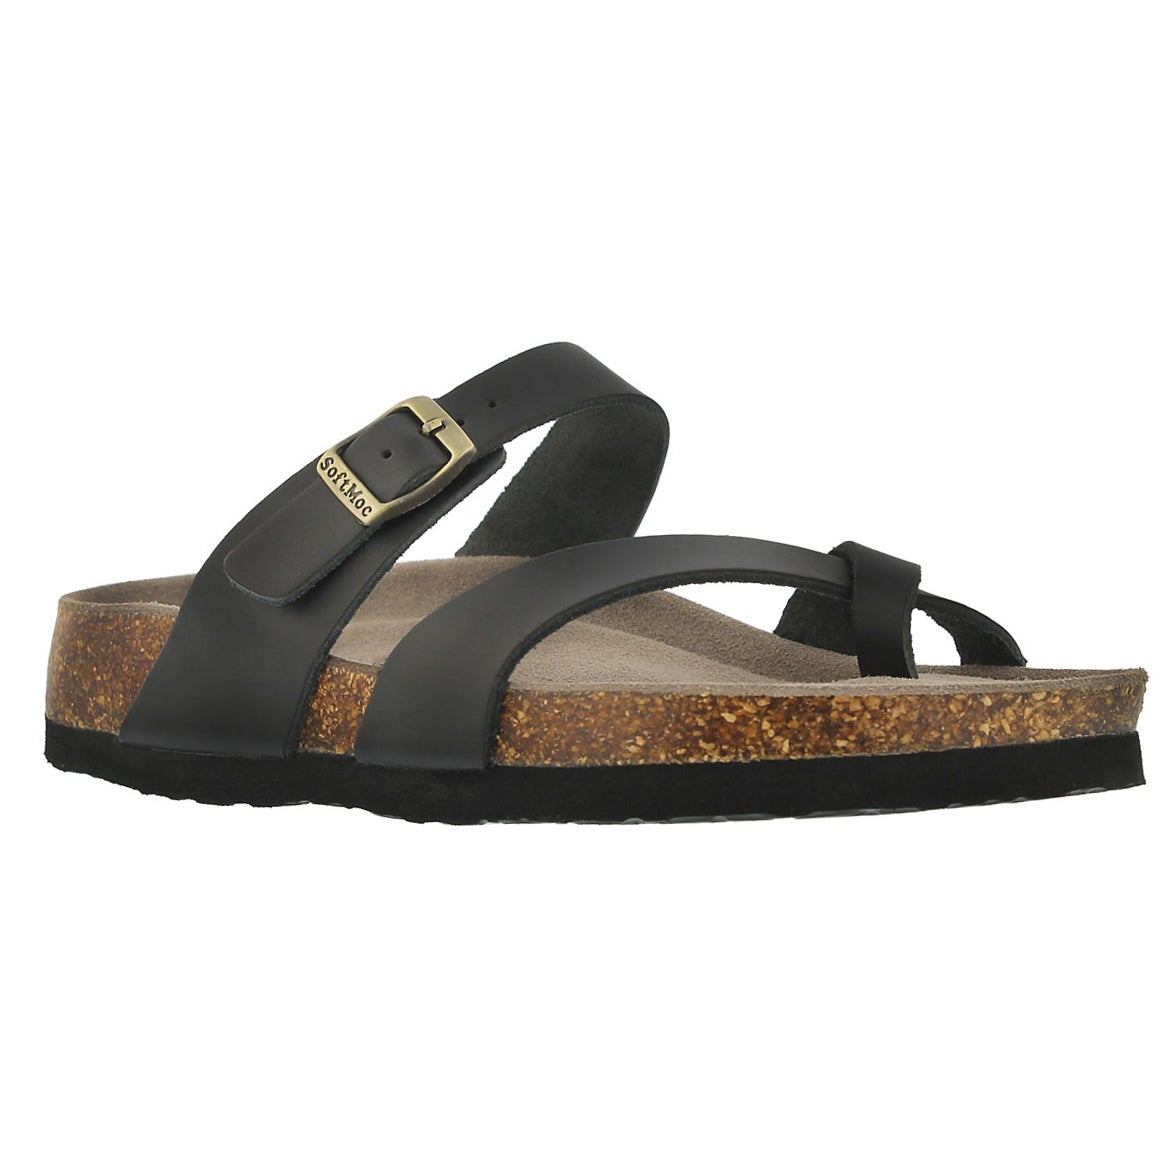 Women's ALICIA 3 black memory foam sandals